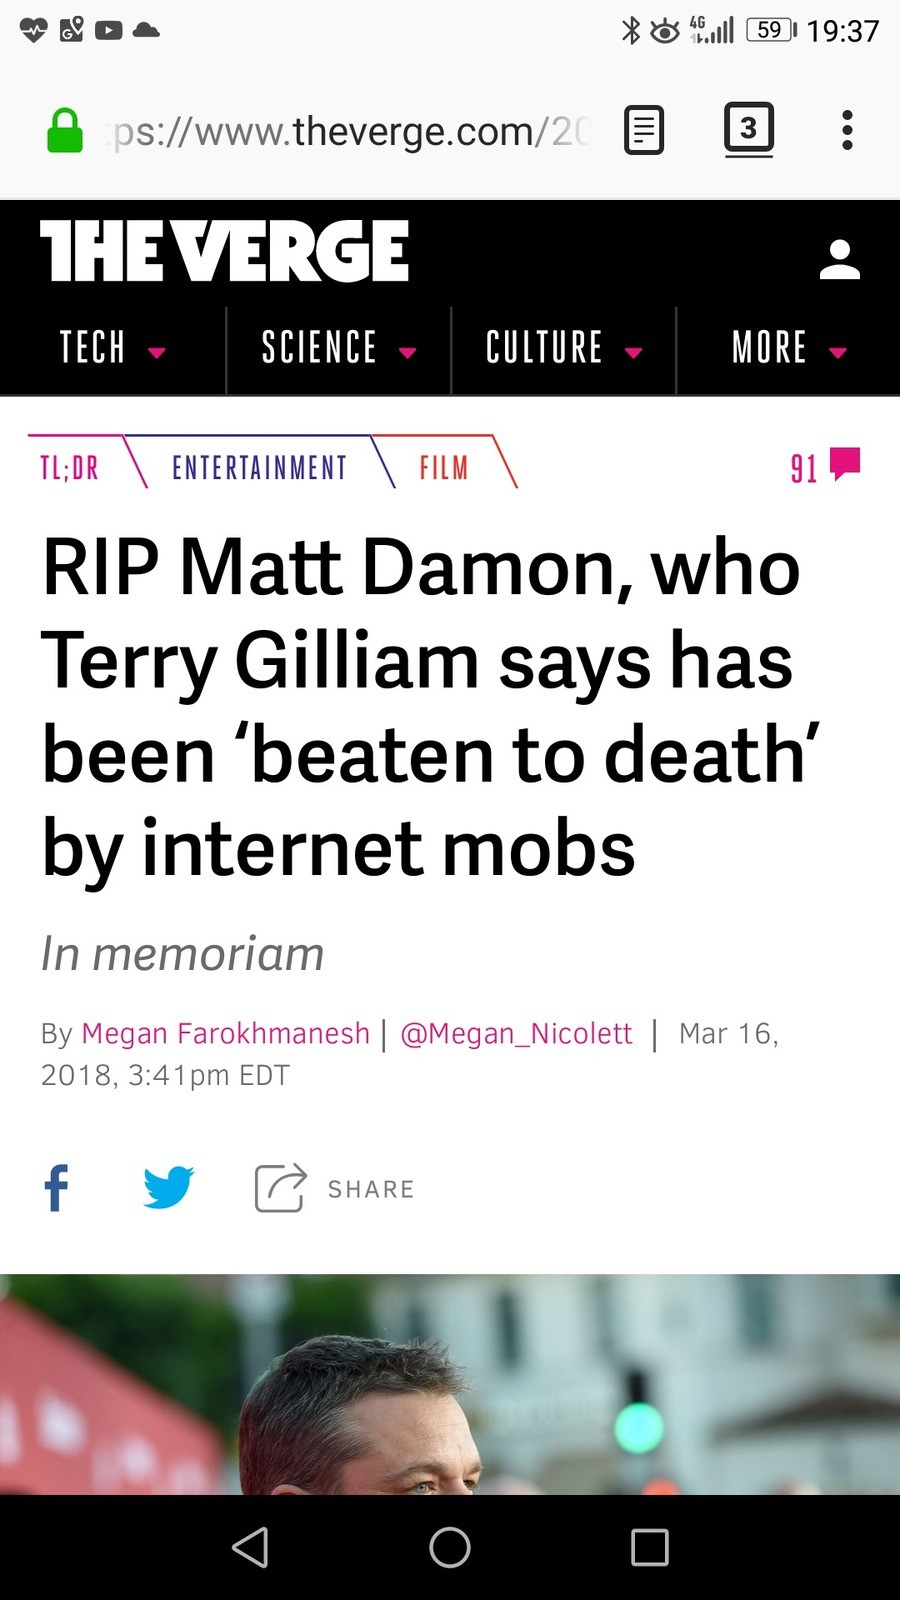 Anybody seen this yet?. I'm not sure if this is true, I only found this story about it. I'm jot sure if the verge is satirical or not.. CEI El TECH SCIENCE PICT